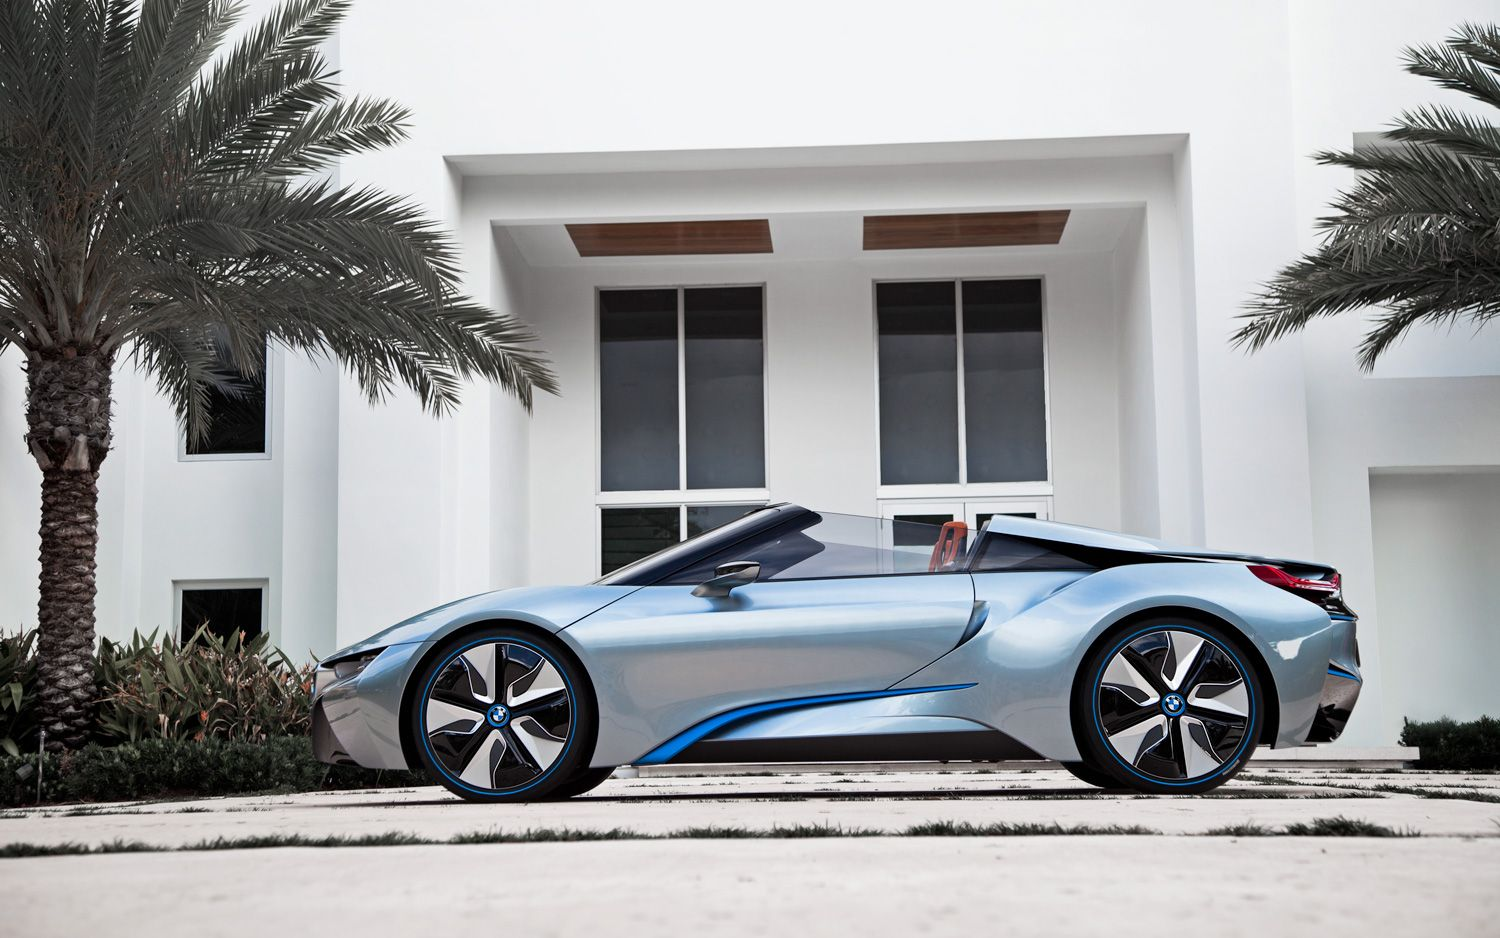 Bmw I8 Spyder Plug In Hybrid Concept Video Electric Vehicle News